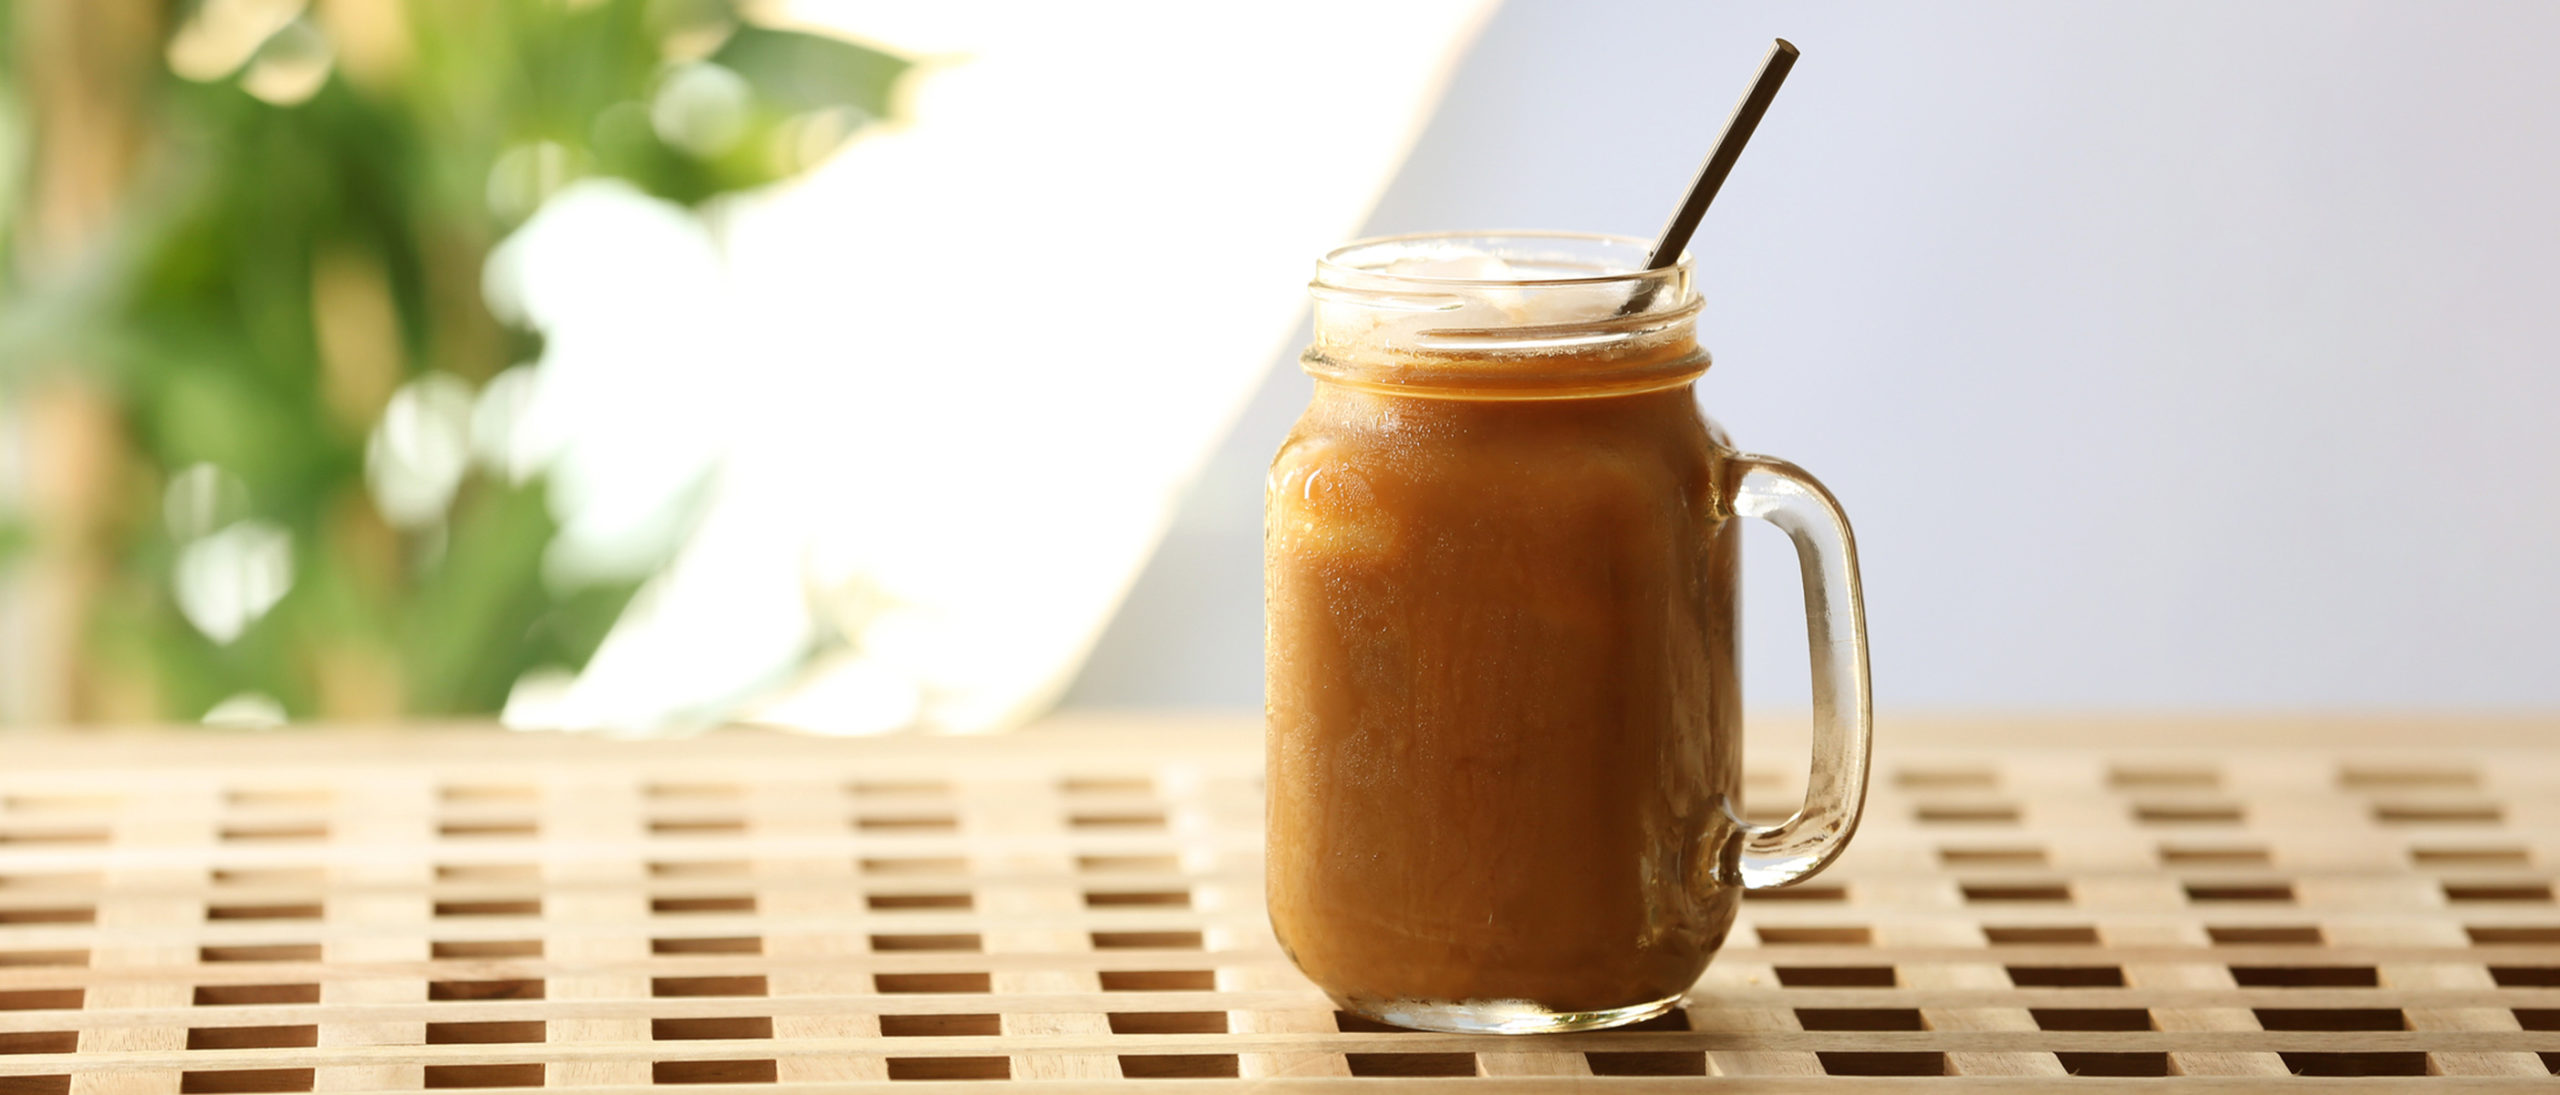 Iced coffee in a mason jar with a straw on a wooden surface.